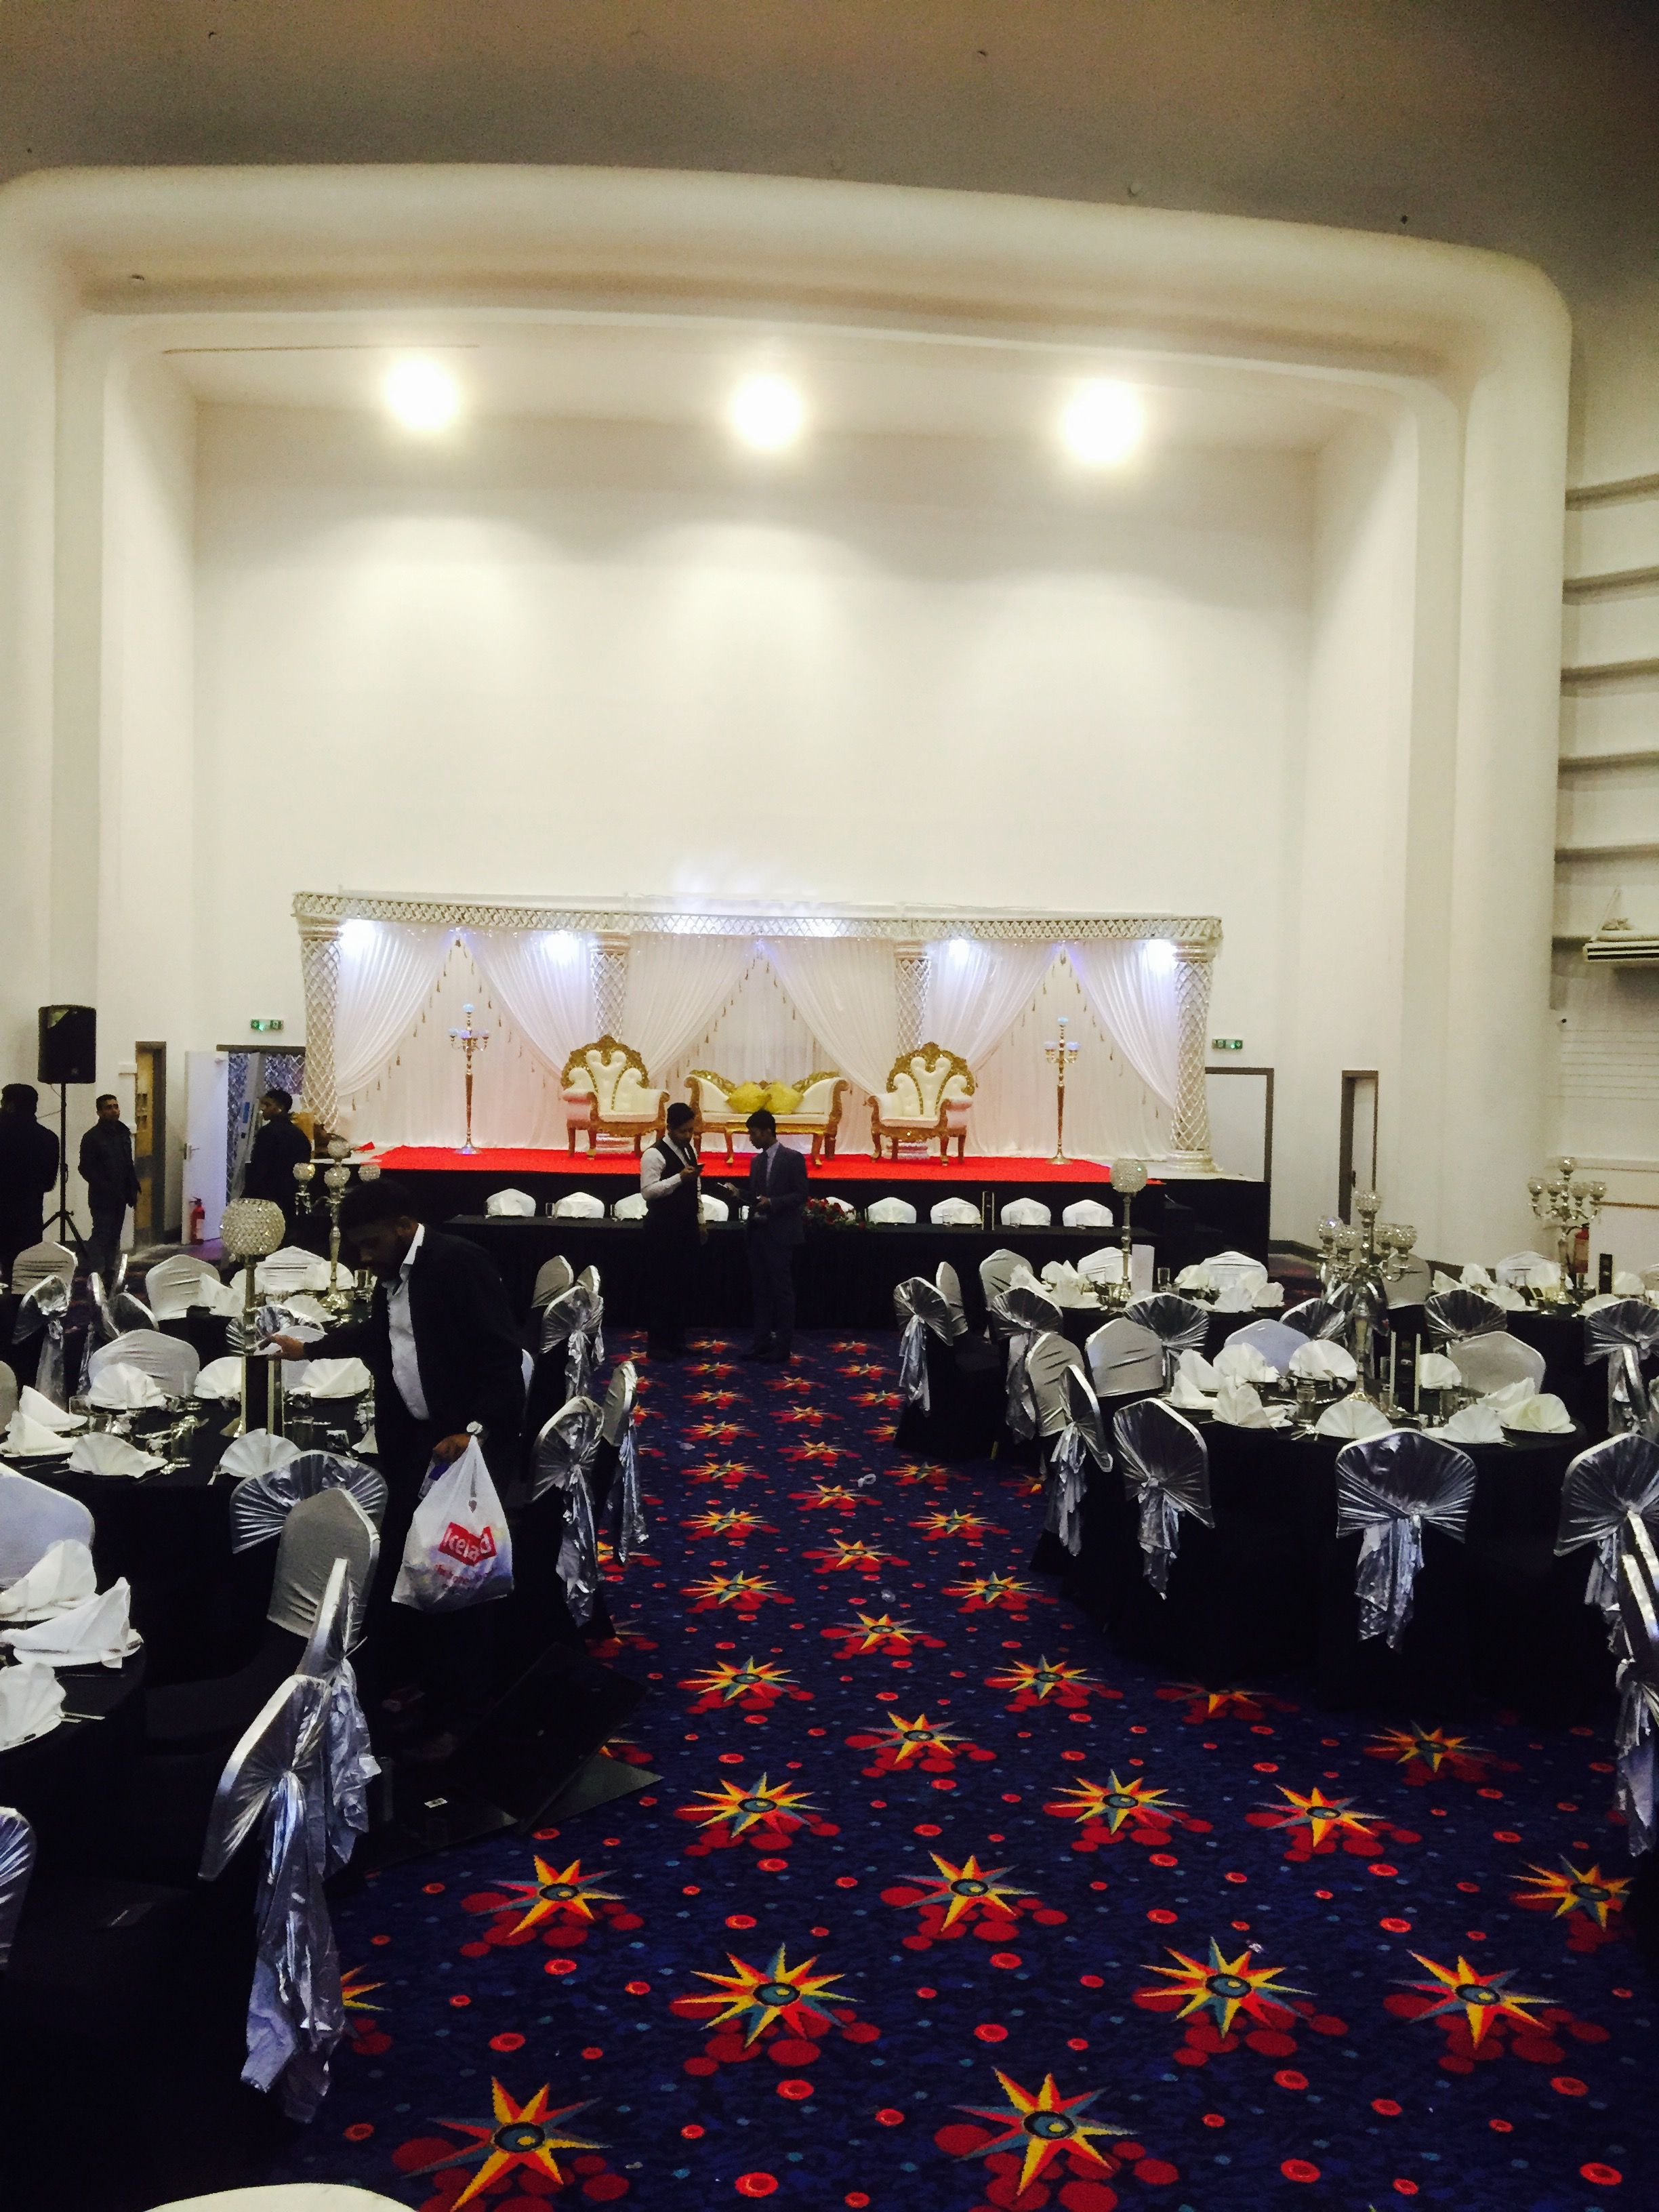 Pin By Complete Toastmaster On Mayfair Venue In Chadwell Heath Romford Muslim A Weddings The Pinterest